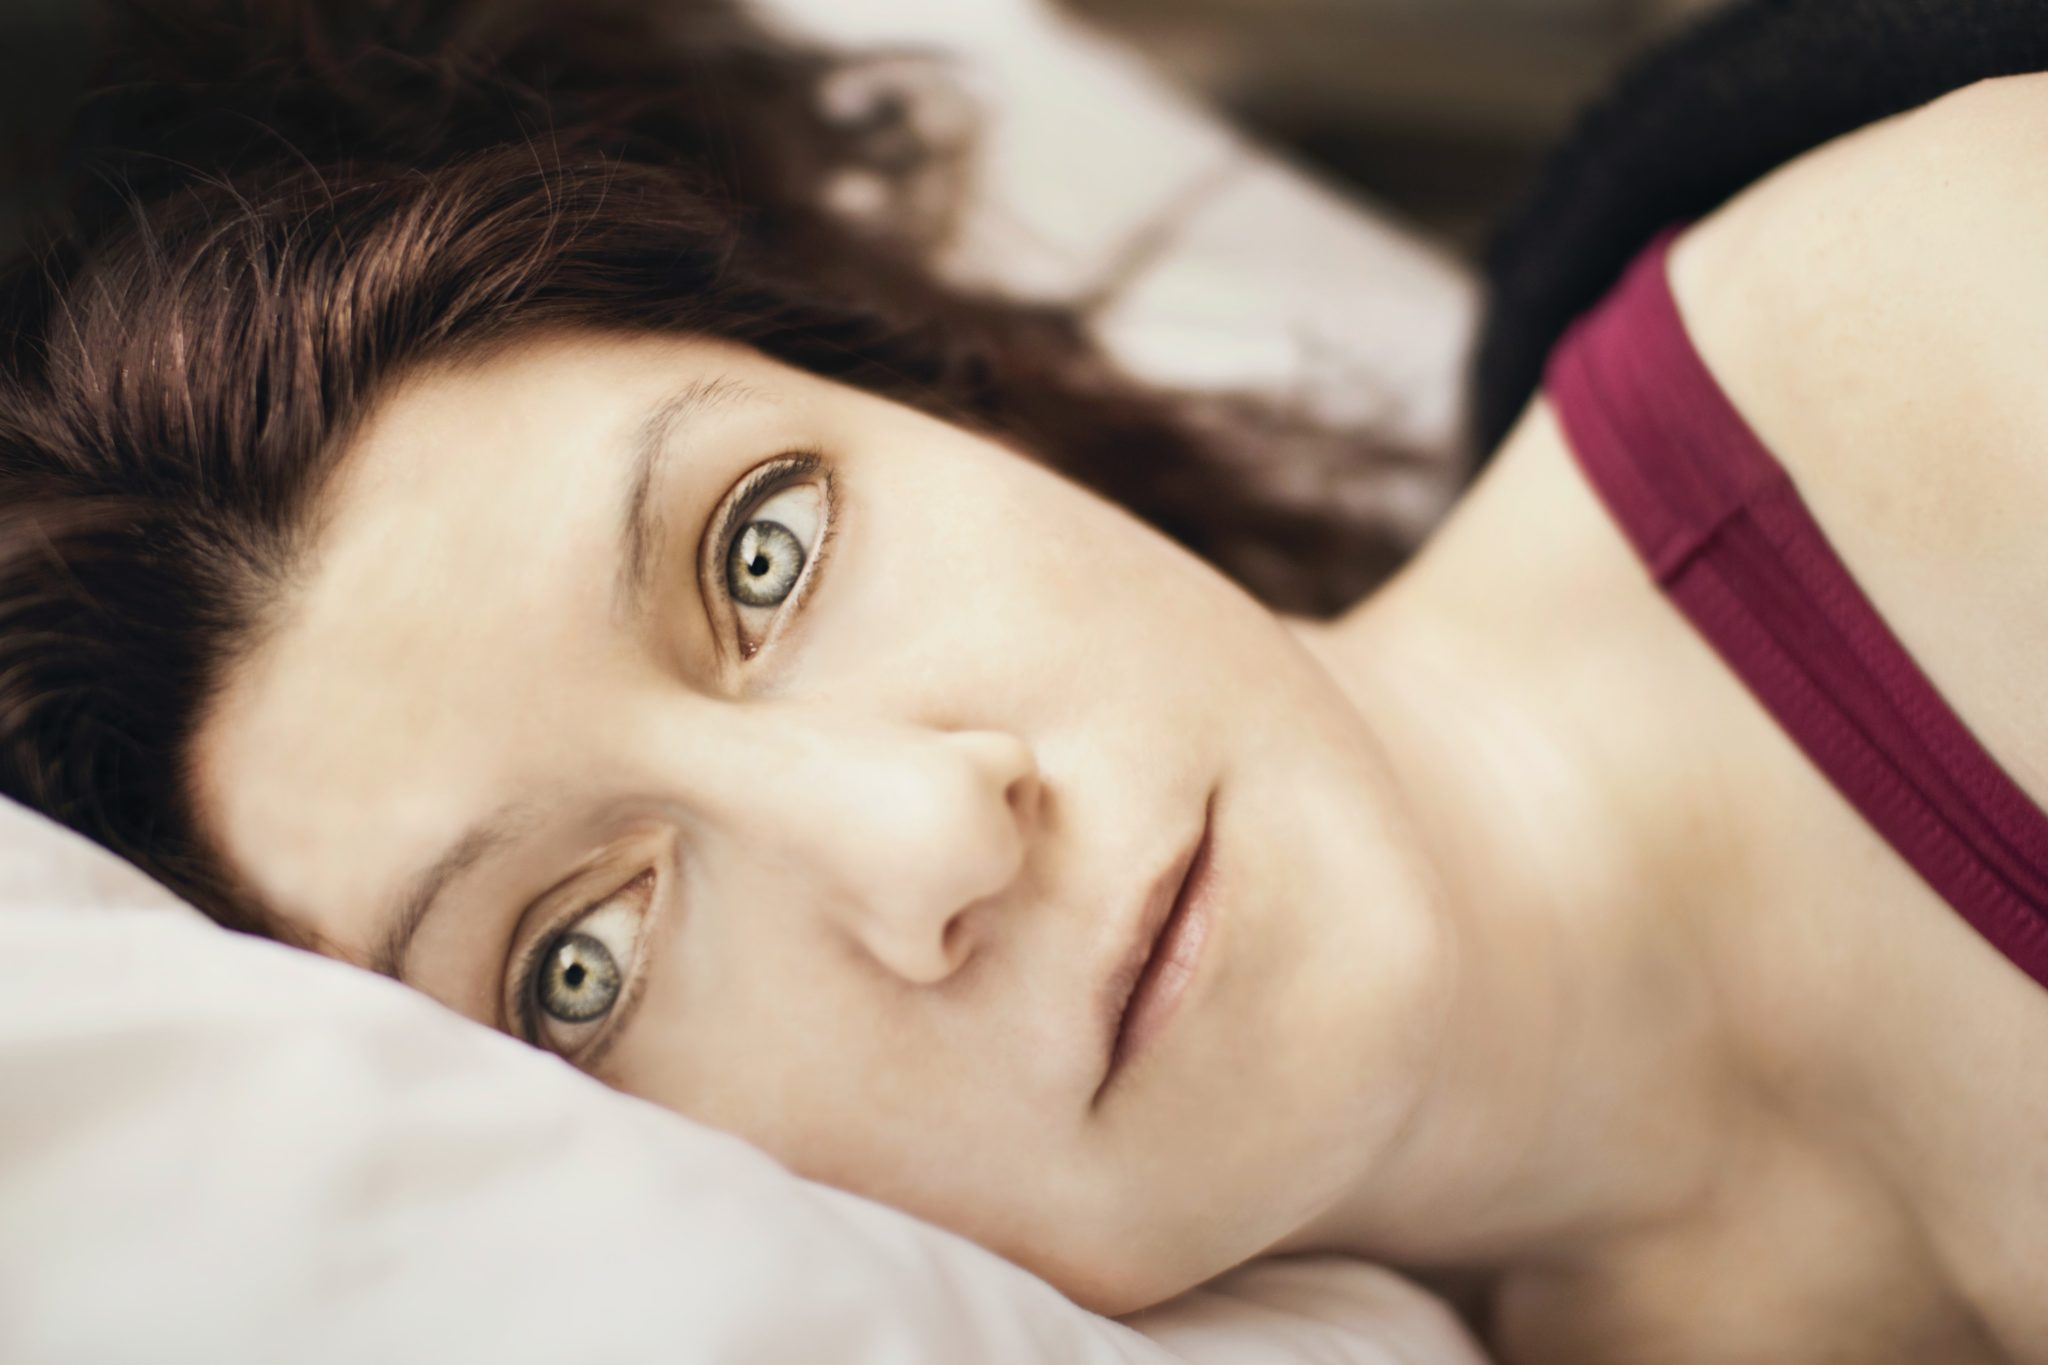 Can Treating Anemia Help Relieve Insomnia and Other Sleep Problems?